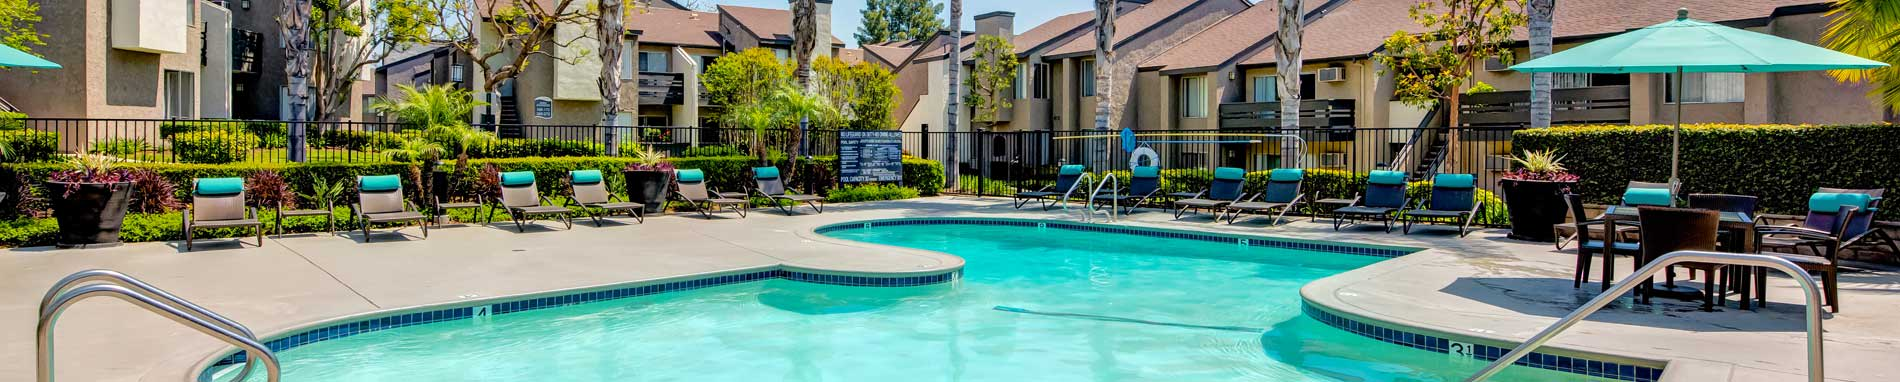 Apartments in Laguna Hills